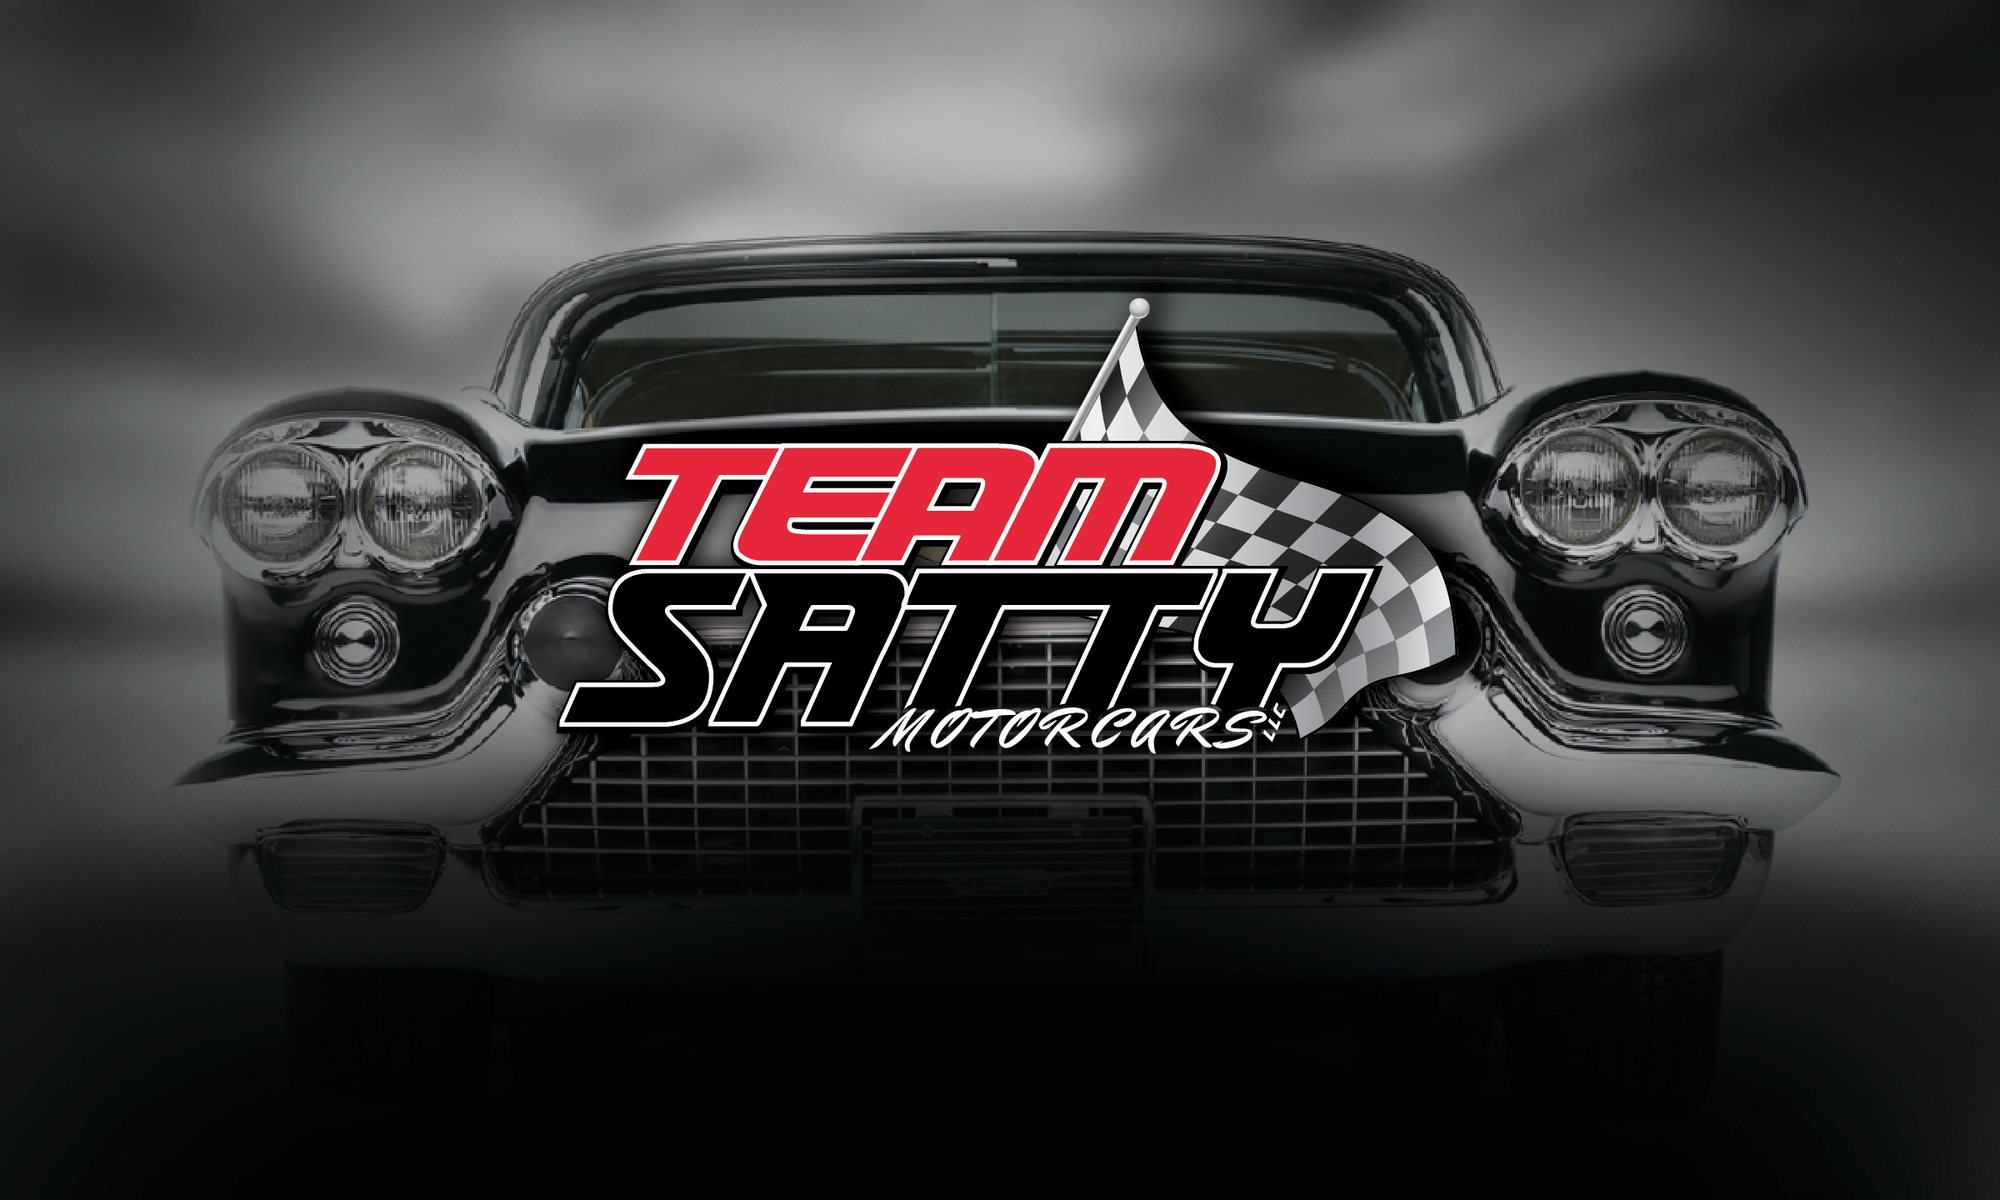 About us | Team Satty Motorcars, LLC | Auto dealership in Fort Worth ...